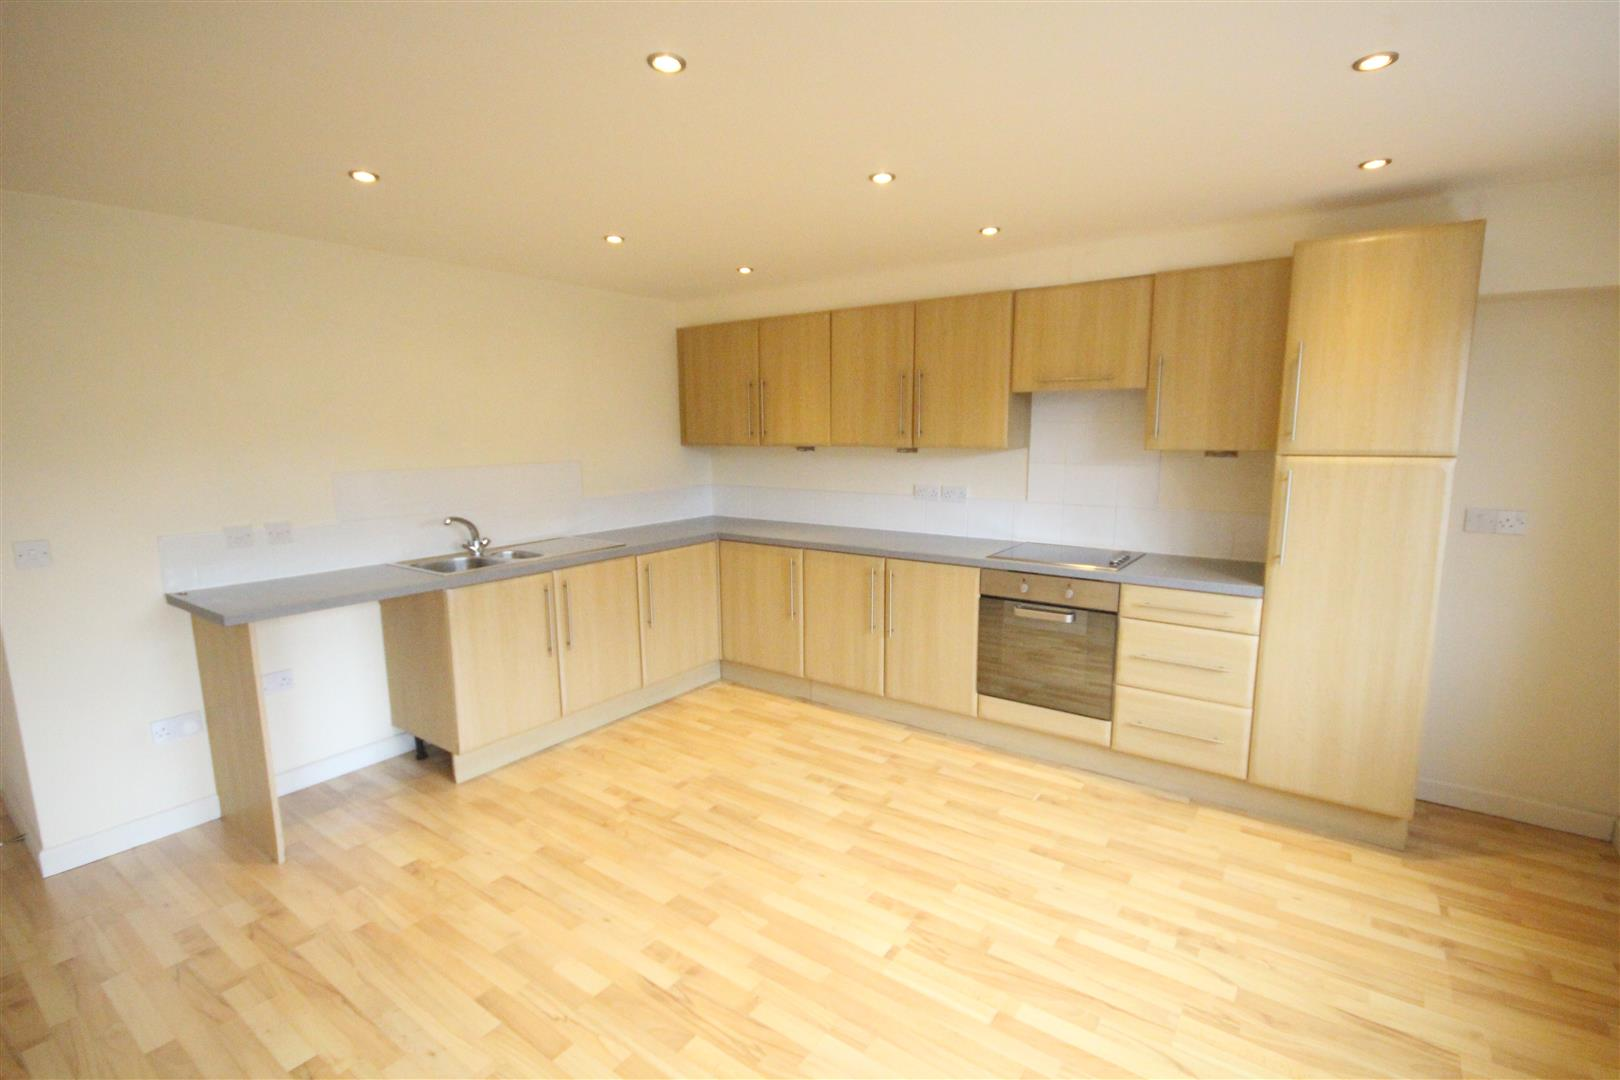 2 bedroom apartment For Sale in Colne - IMG_3443.jpg